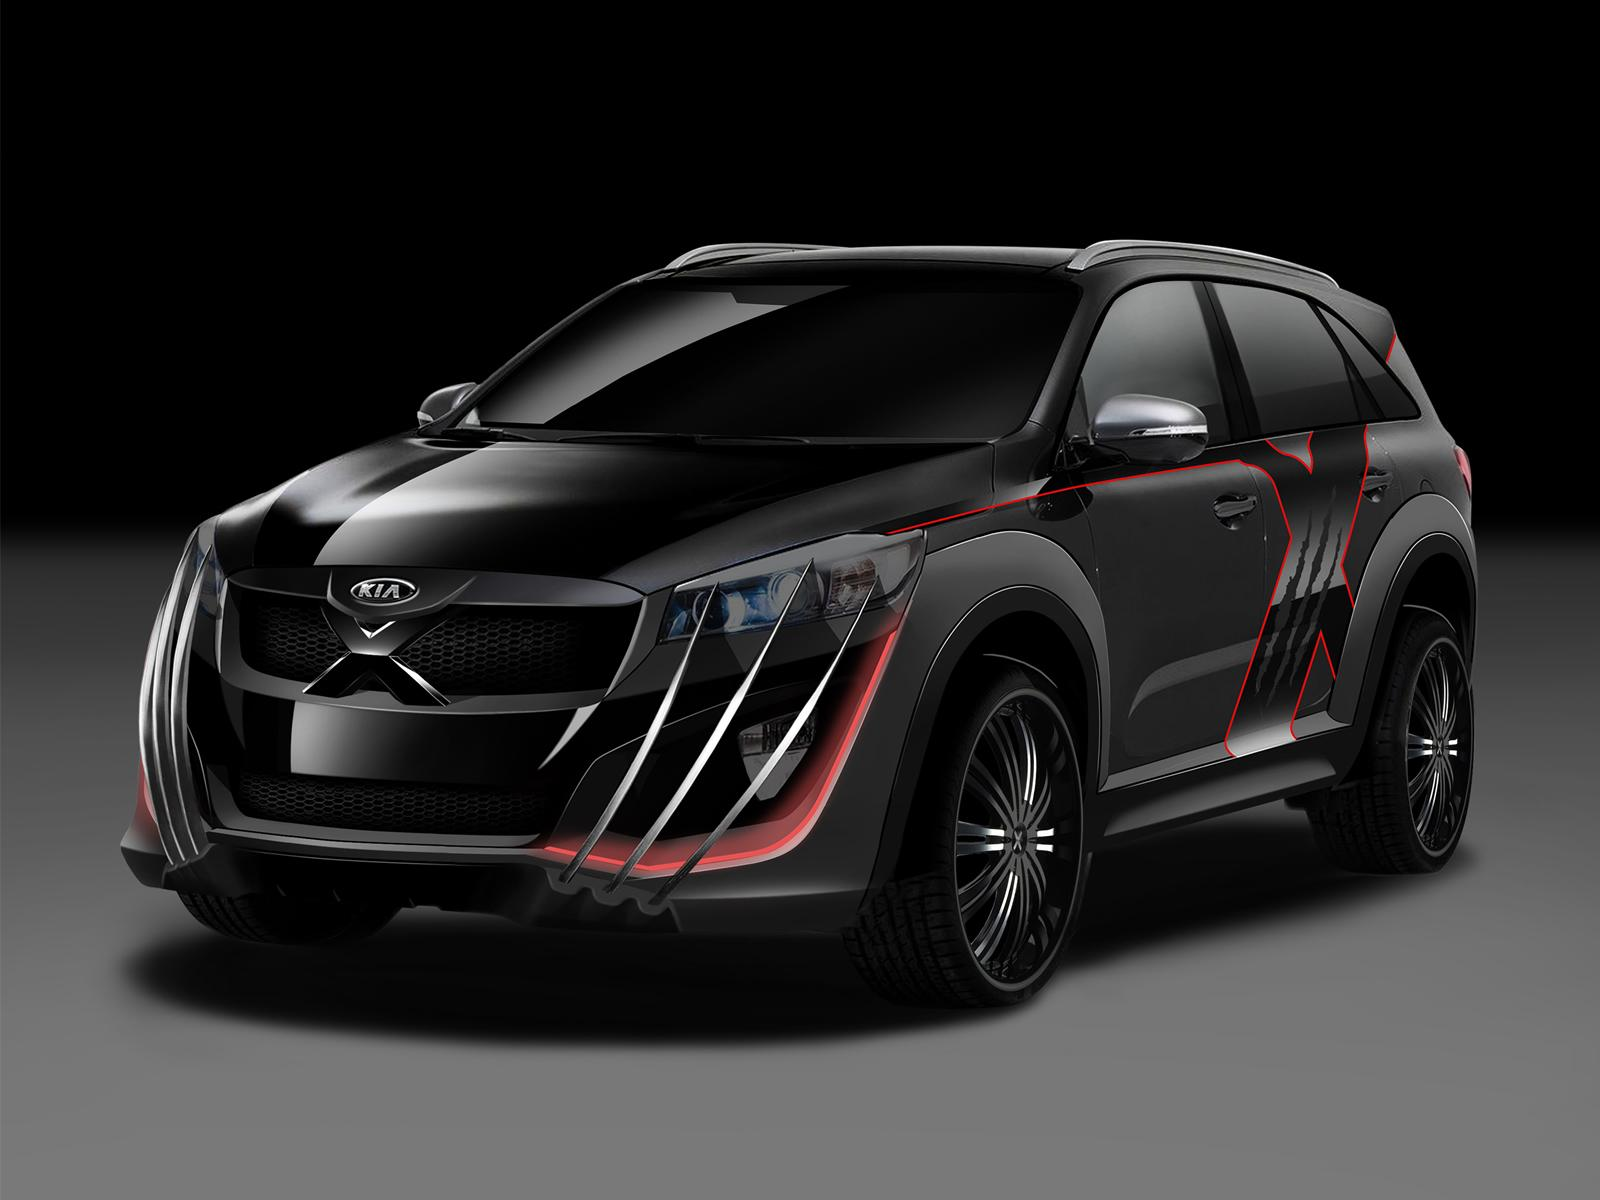 Wolverine's Kia Sorento is an X-Men Promo Vehicle ...